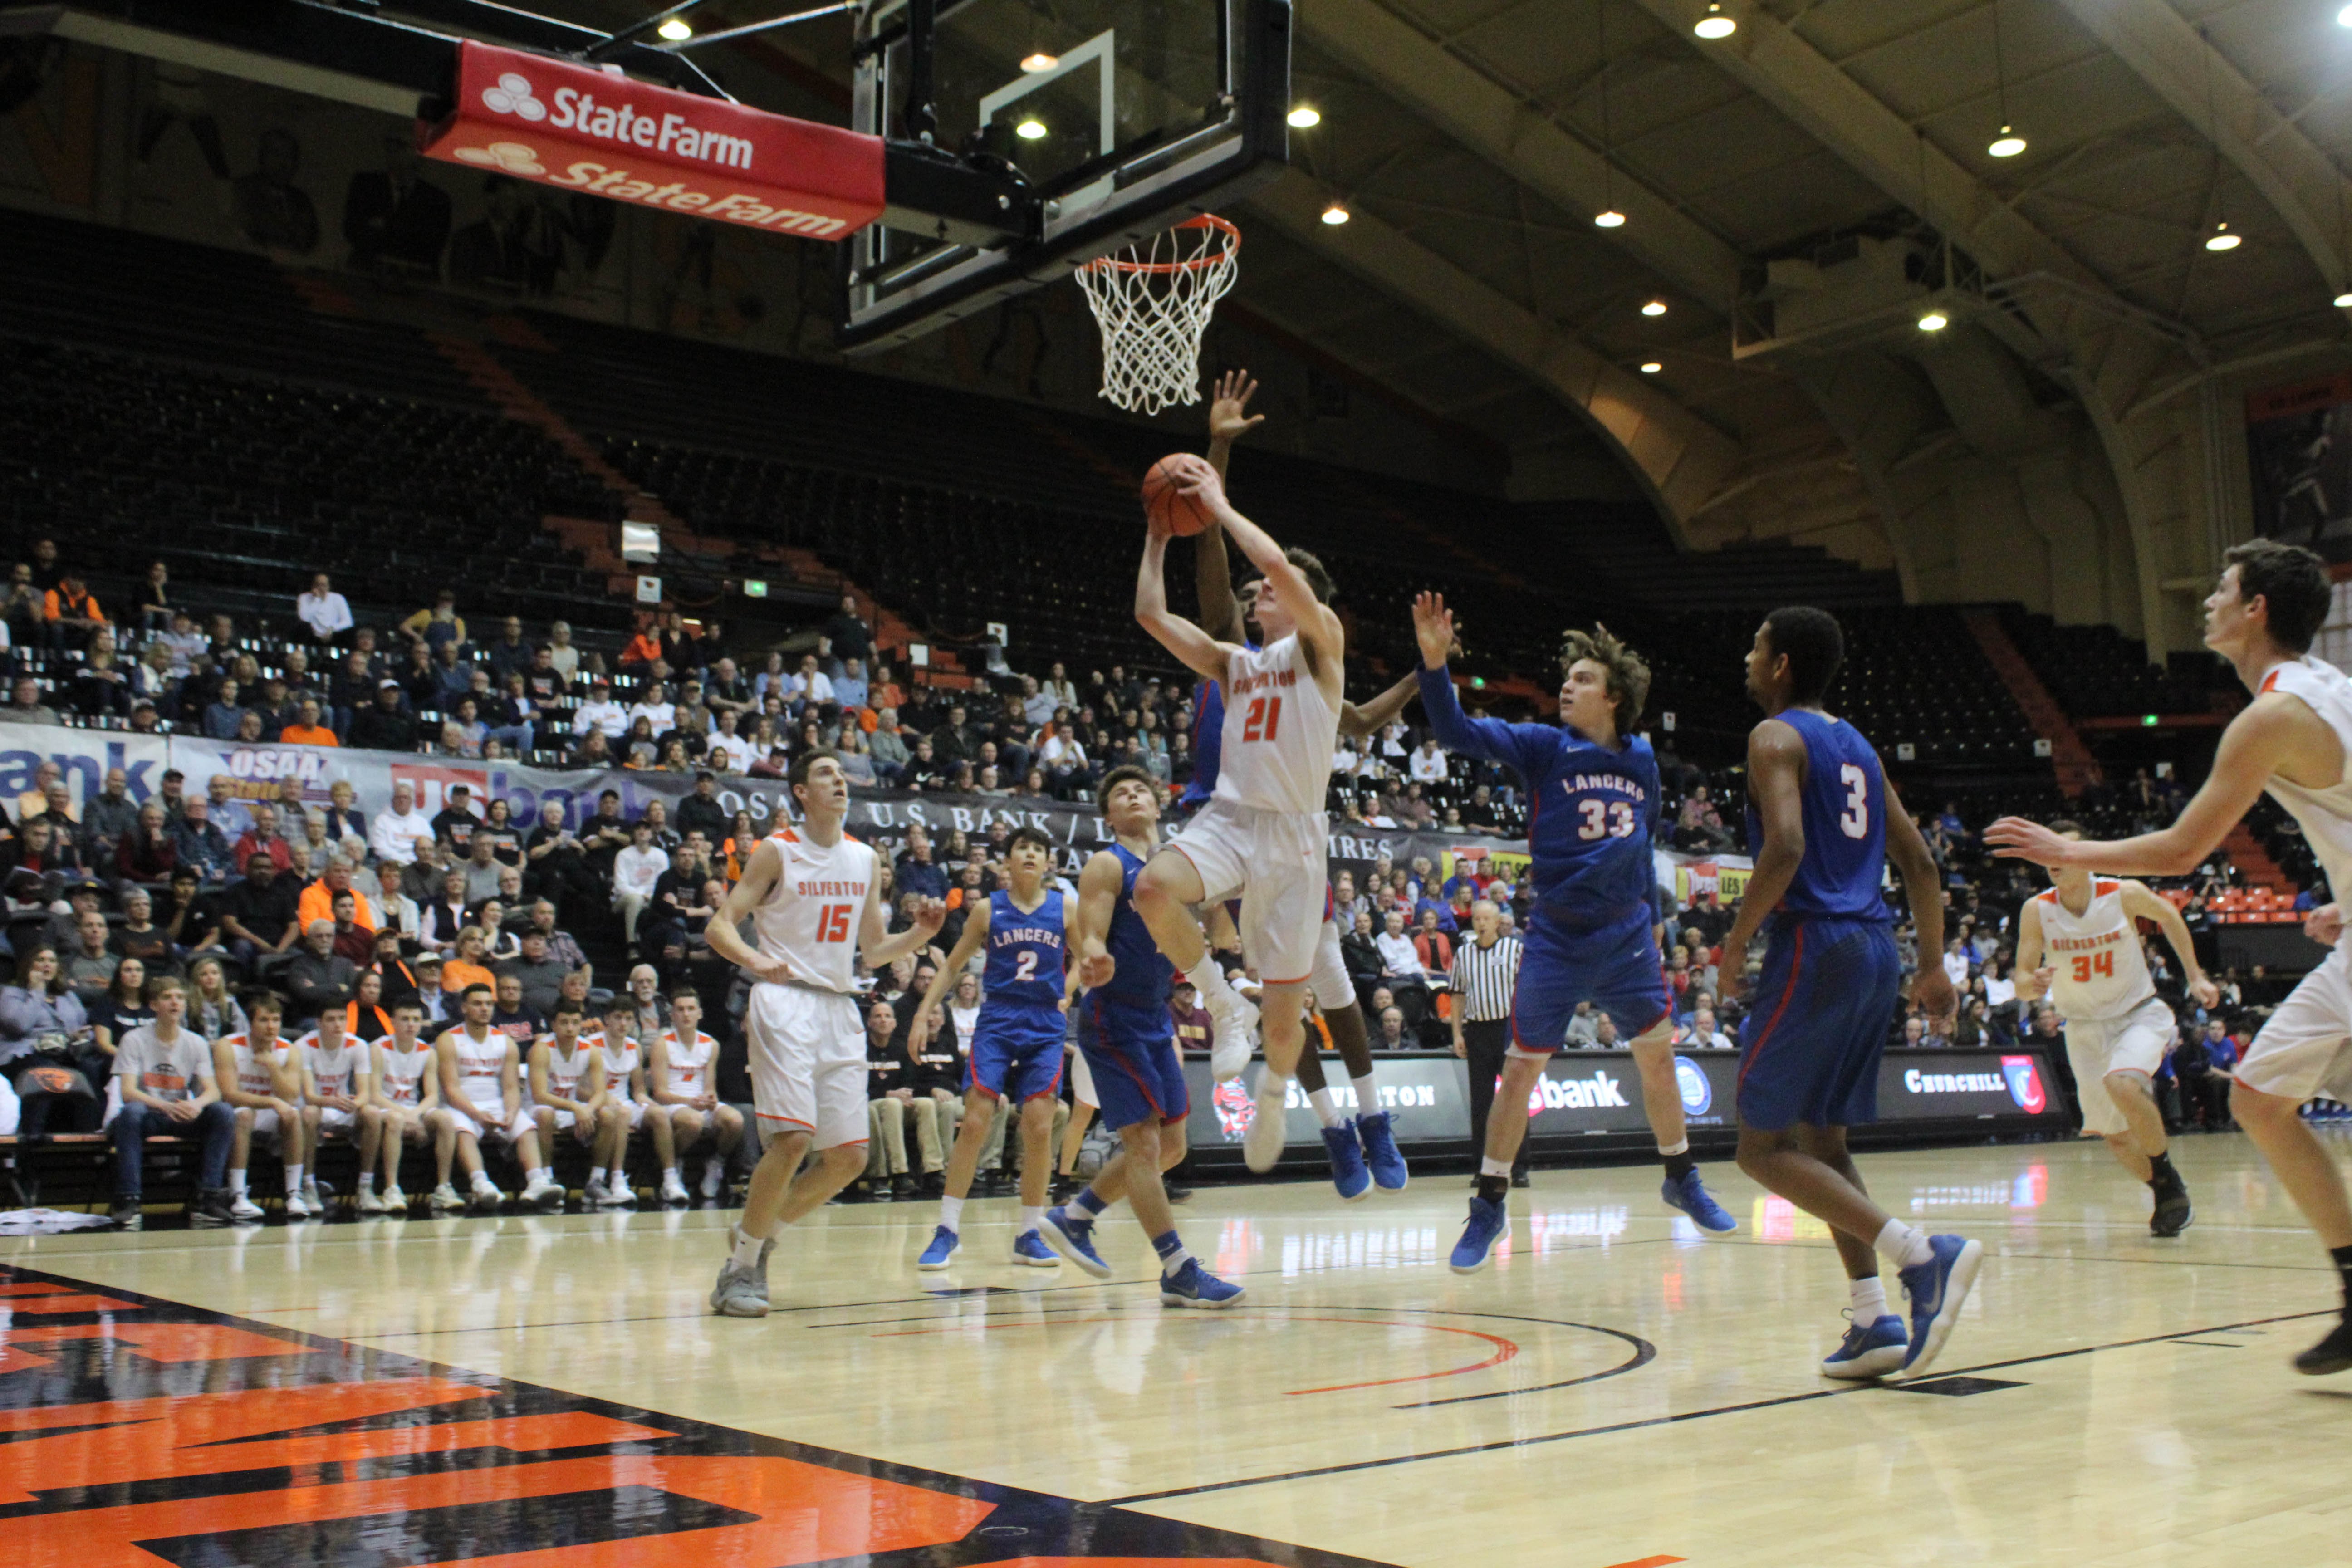 The Silverton Boys Basketball Team took 4th in the State Playoffs